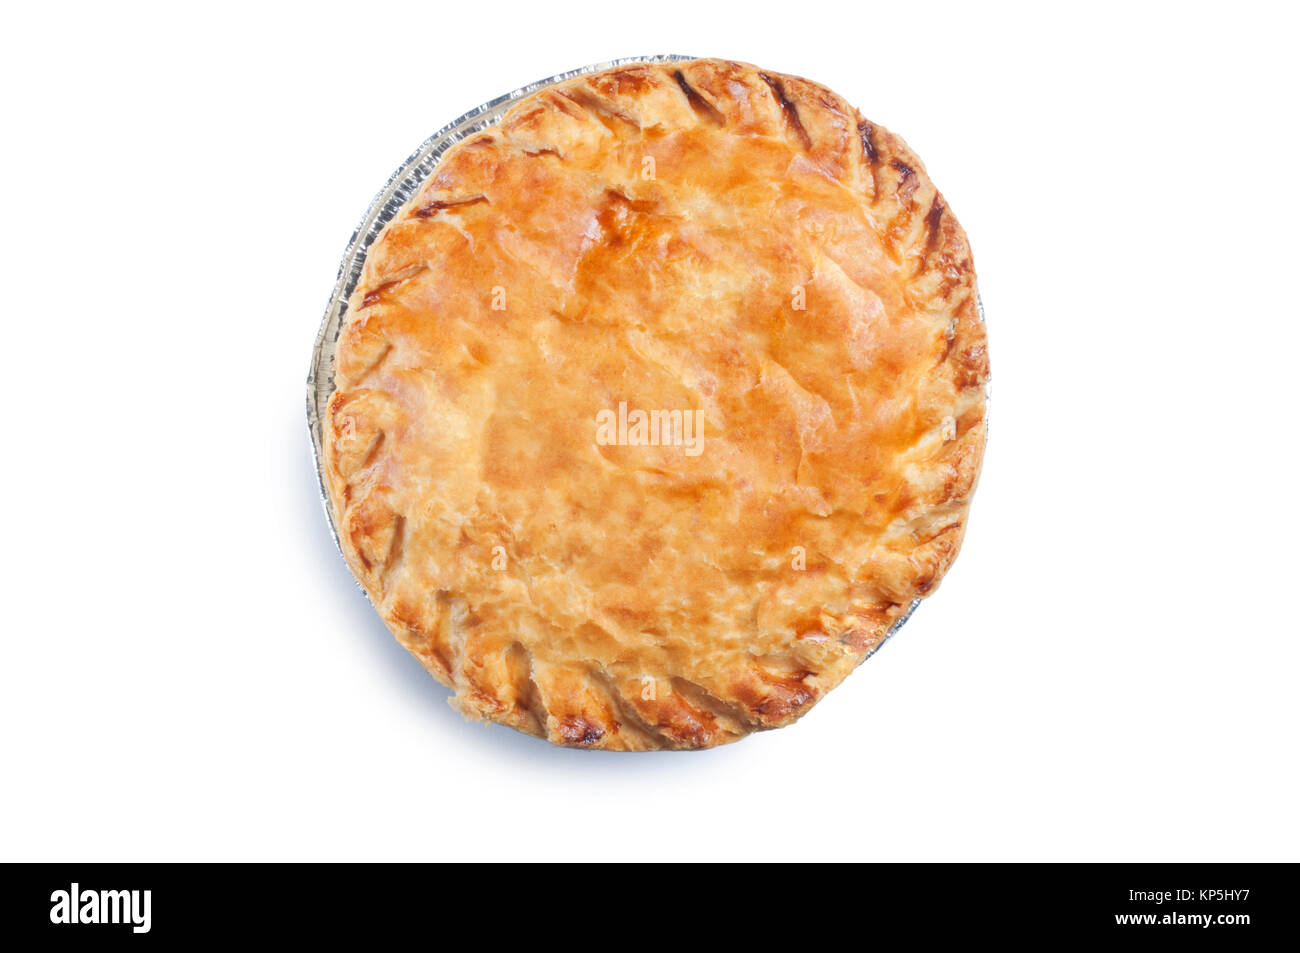 Single, cooked, meat pie isolated on white - John Gollop - Stock Image